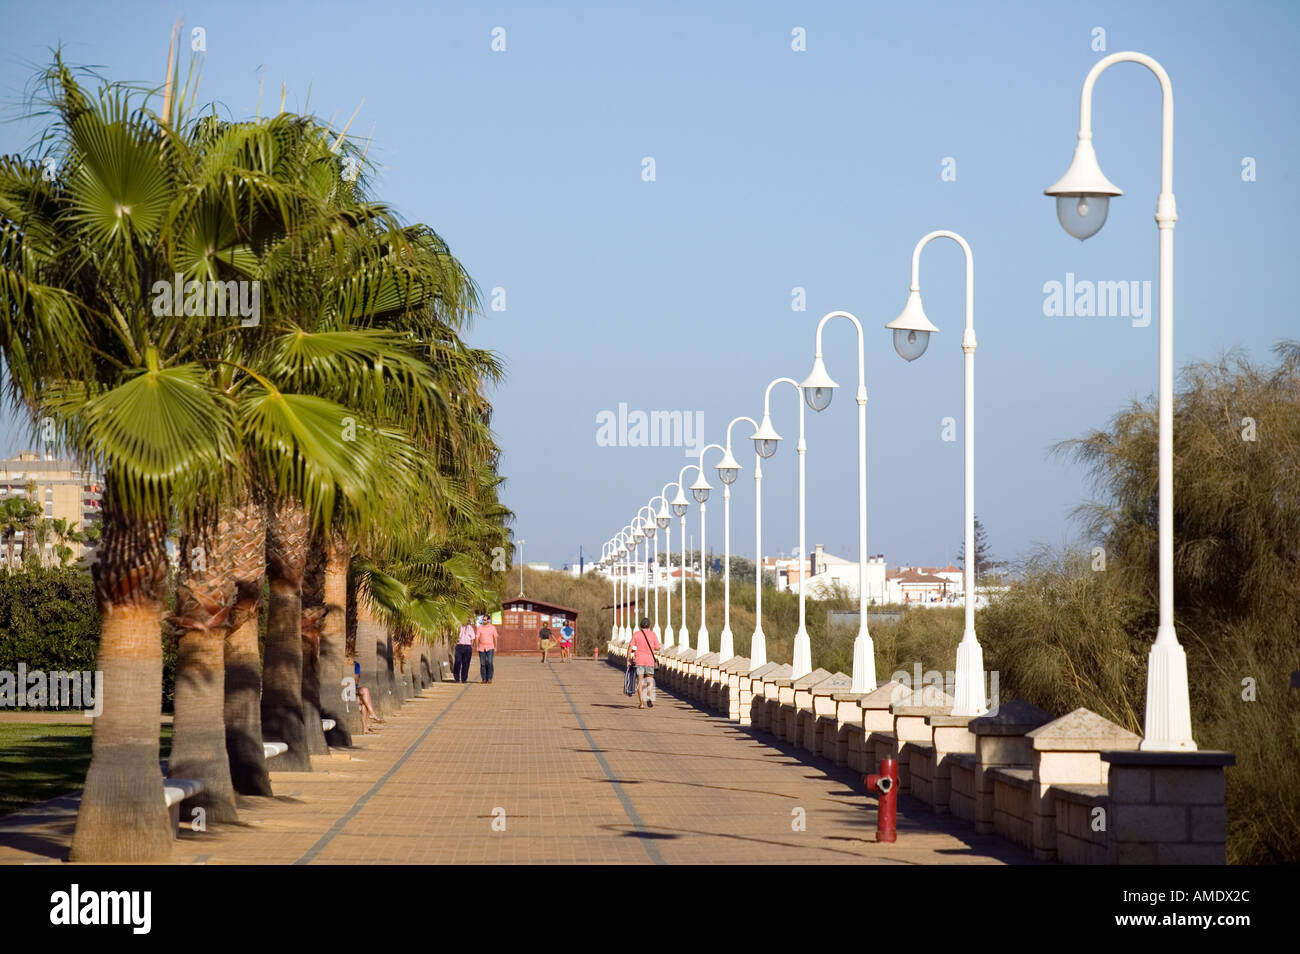 Street lights and palm trees line a promenade walk in the Spanish costal area of Islantilla Stock Photo